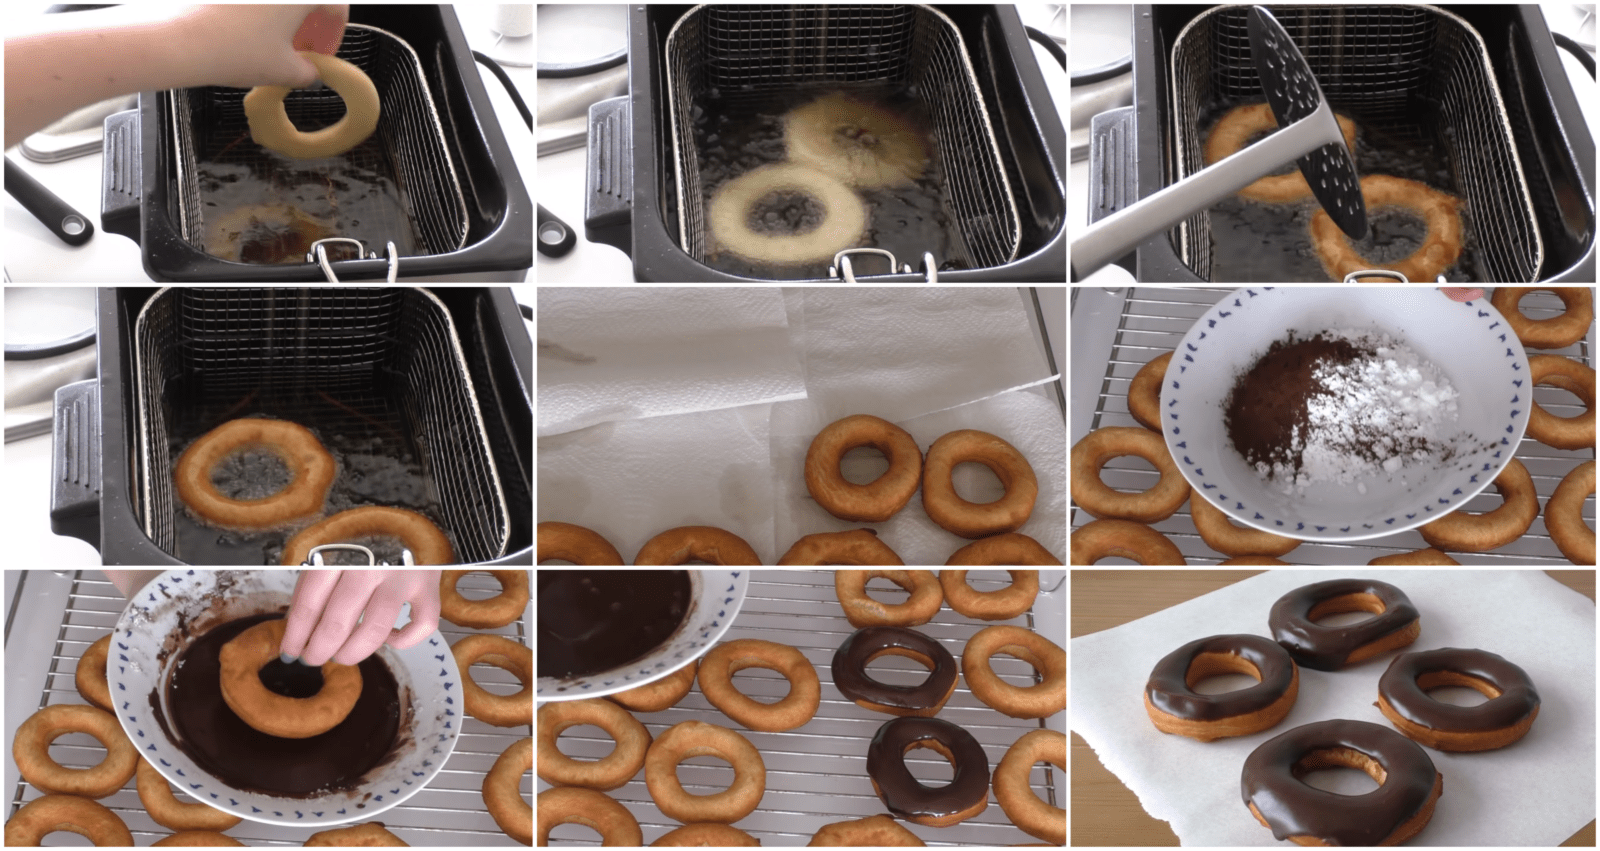 frying and decorating chocolate donuts